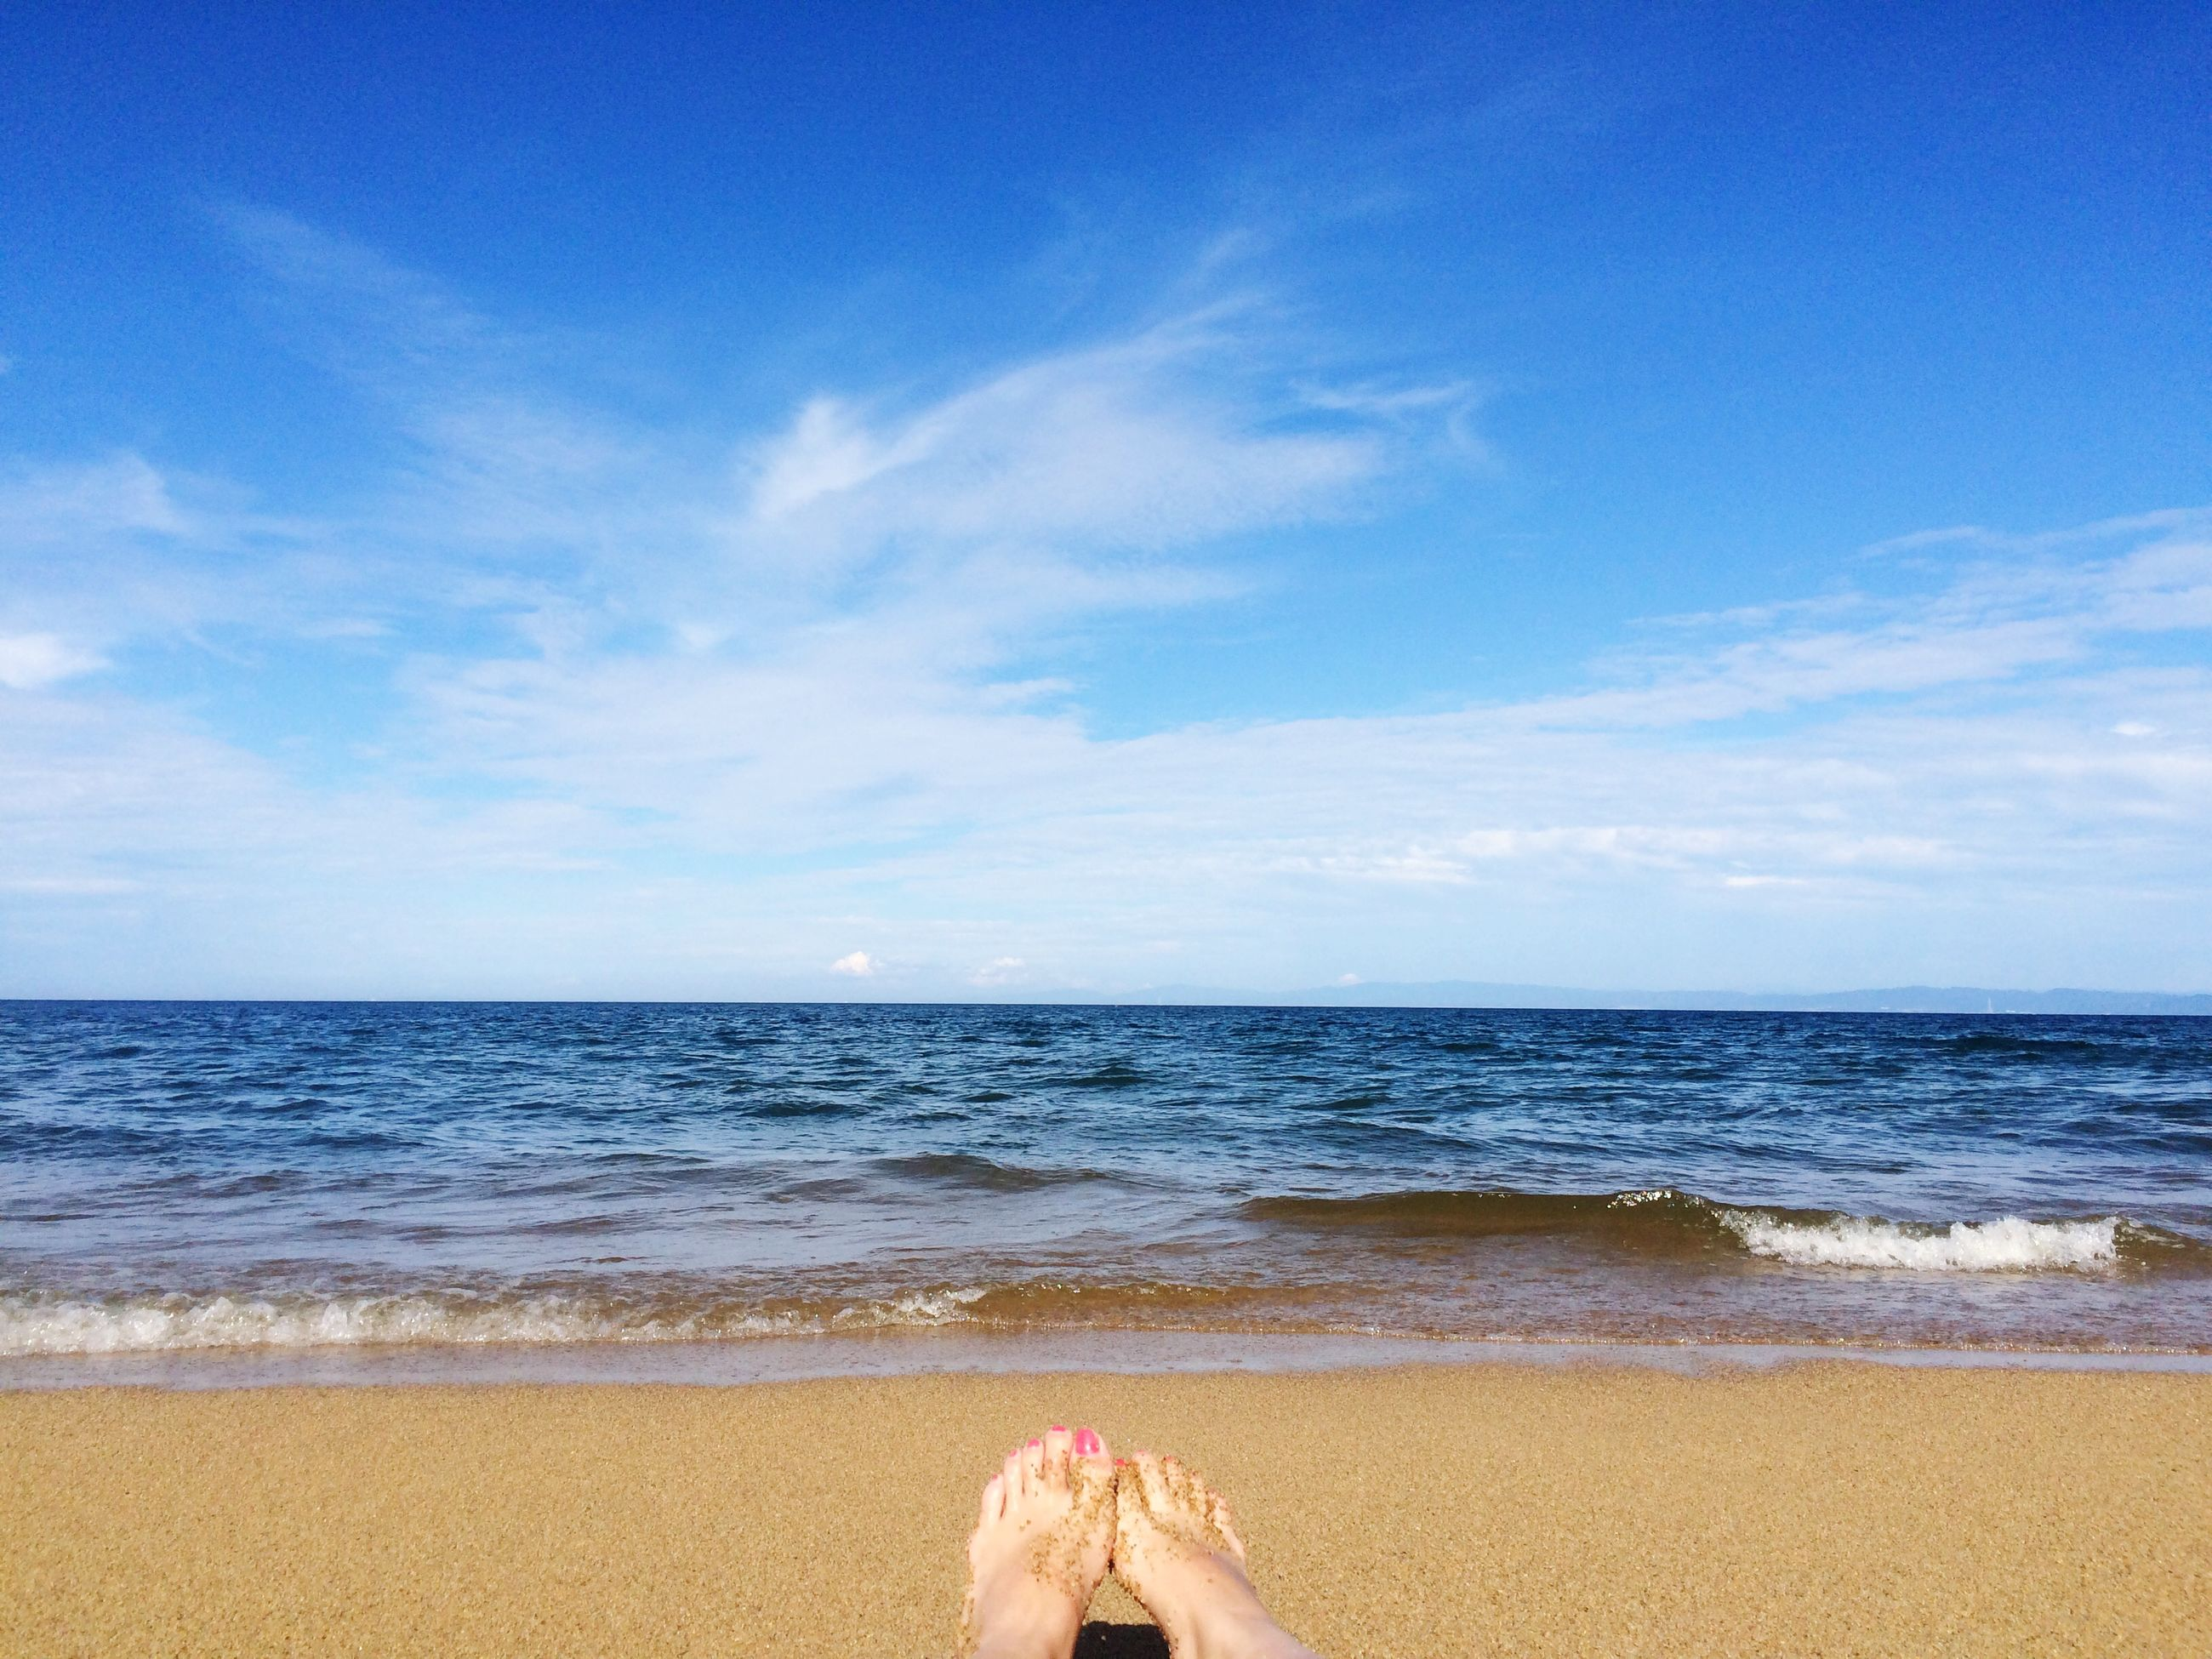 sea, beach, horizon over water, water, sand, shore, sky, person, low section, barefoot, vacations, personal perspective, scenics, leisure activity, beauty in nature, lifestyles, tranquil scene